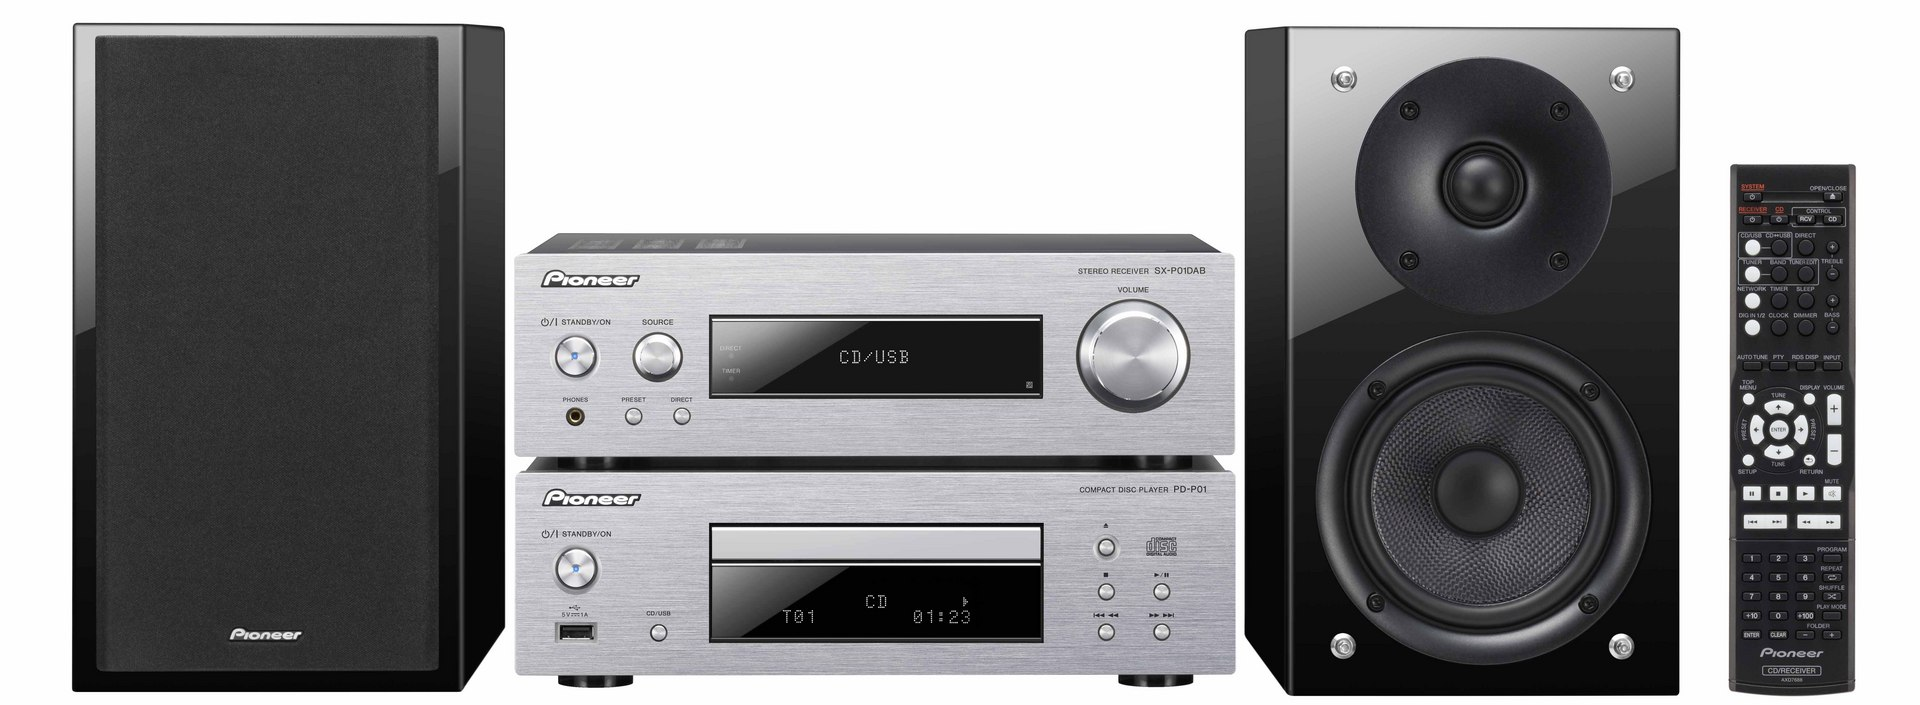 pioneer p1dab silver cd player hifi dab radio system ipod. Black Bedroom Furniture Sets. Home Design Ideas